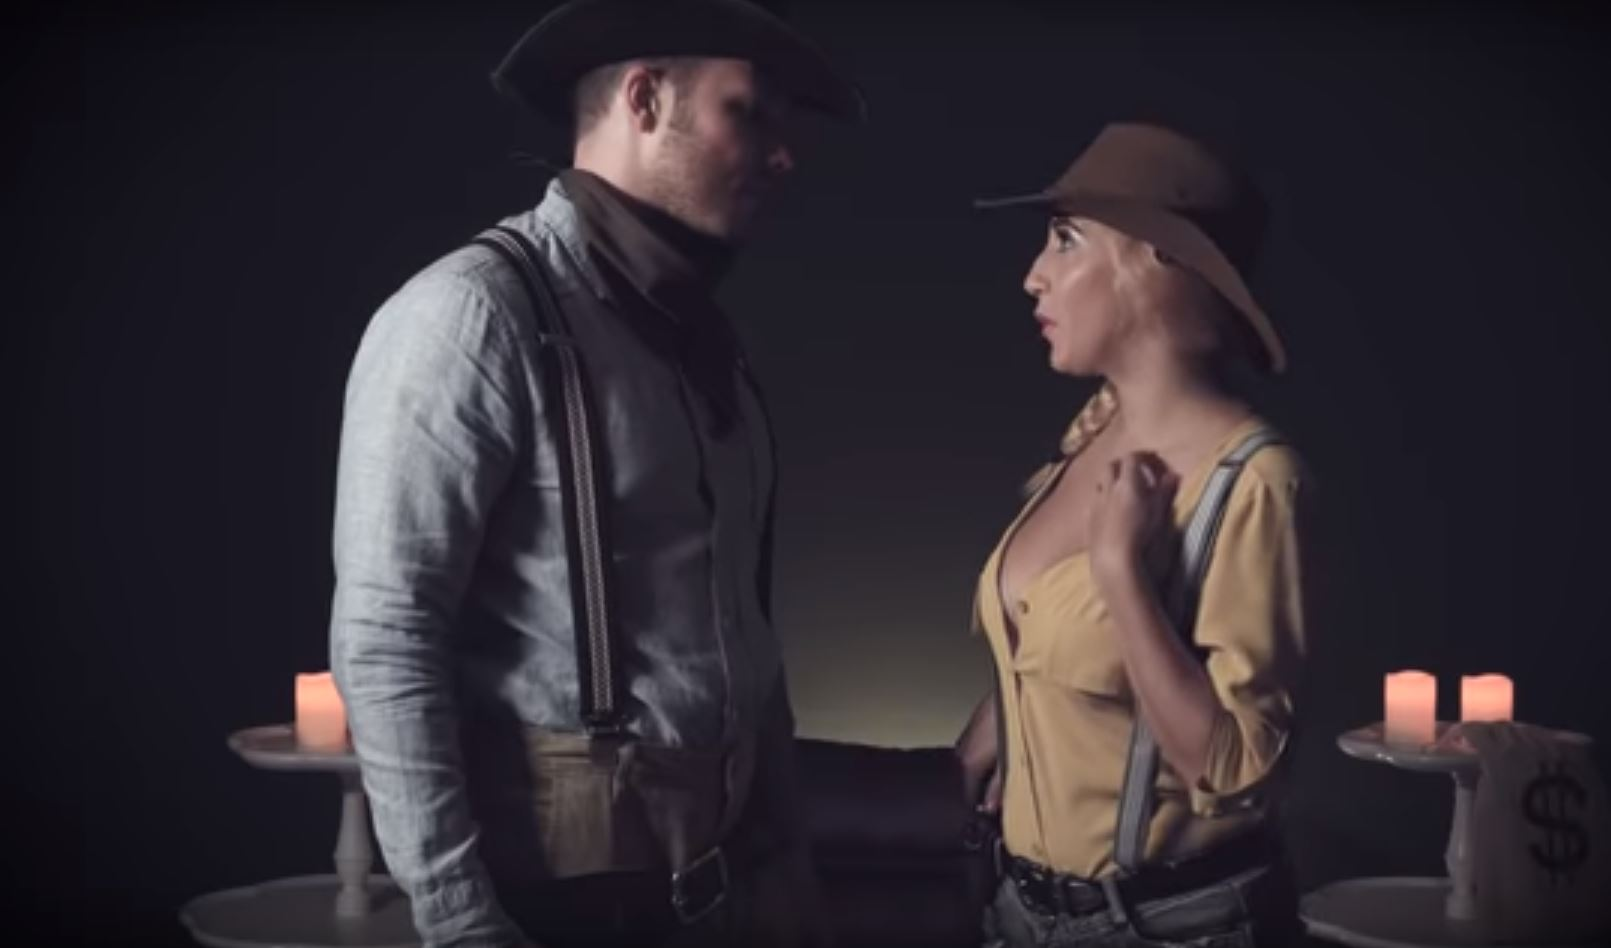 Photo of Red Dead Redemption 2 has its own grown-up parody